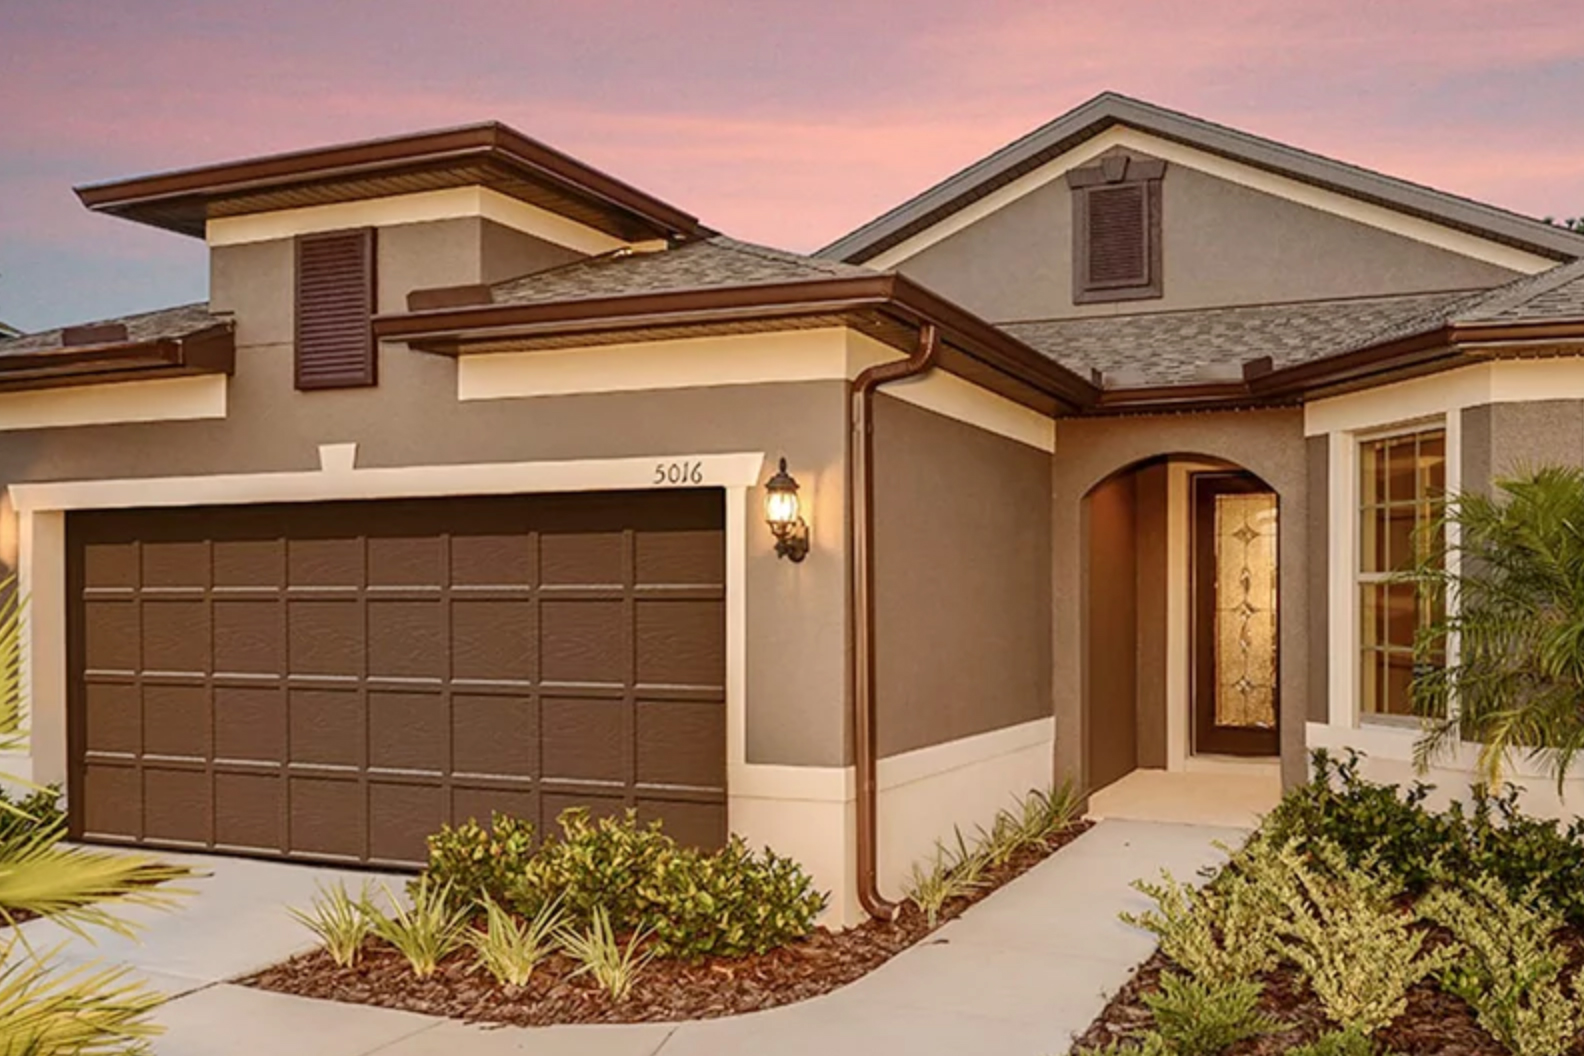 The much anticipated Del Webb Bexley in Land O'Lakes, FL plans to break ground on January 31st.